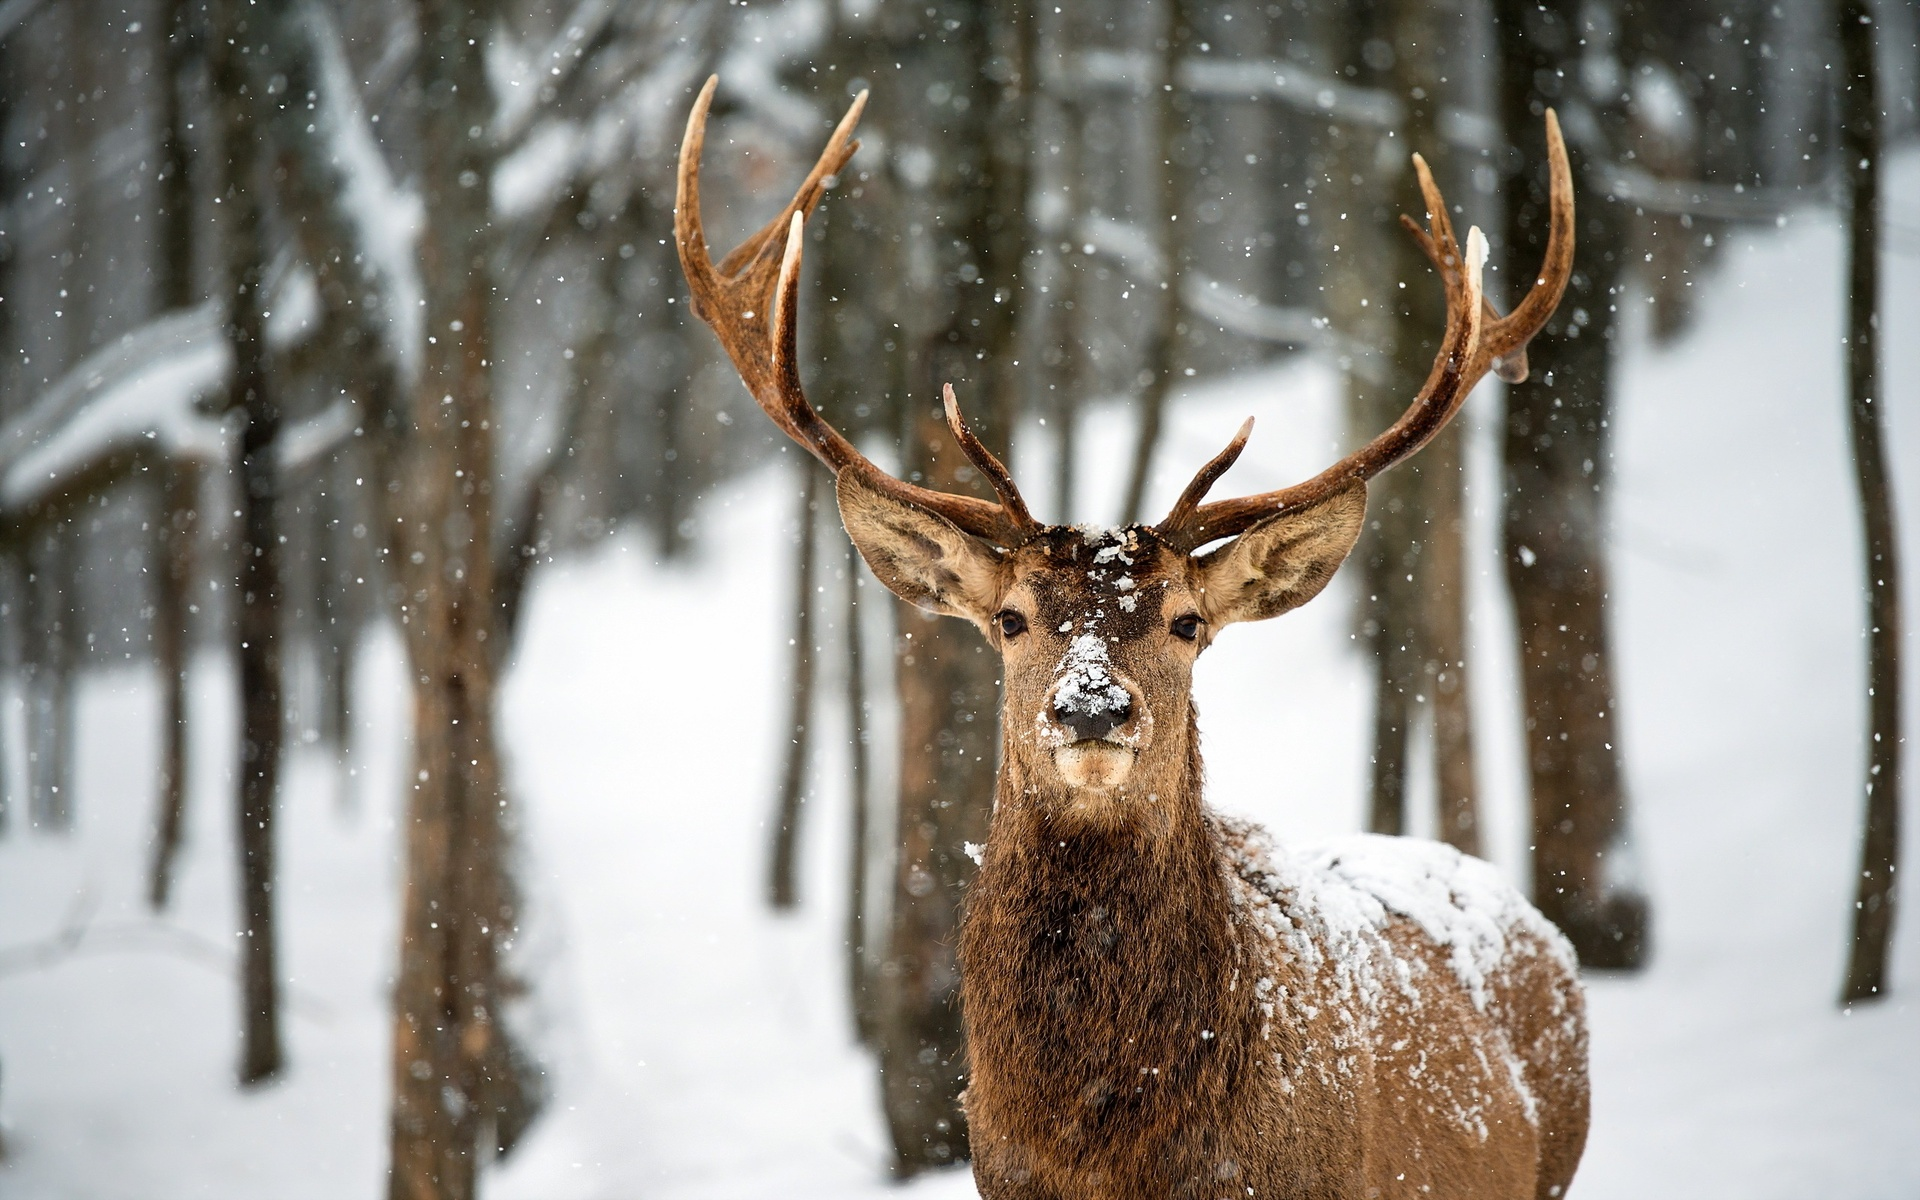 Deer in the snow hd nature wildlife forest HD Wallpaper 1686